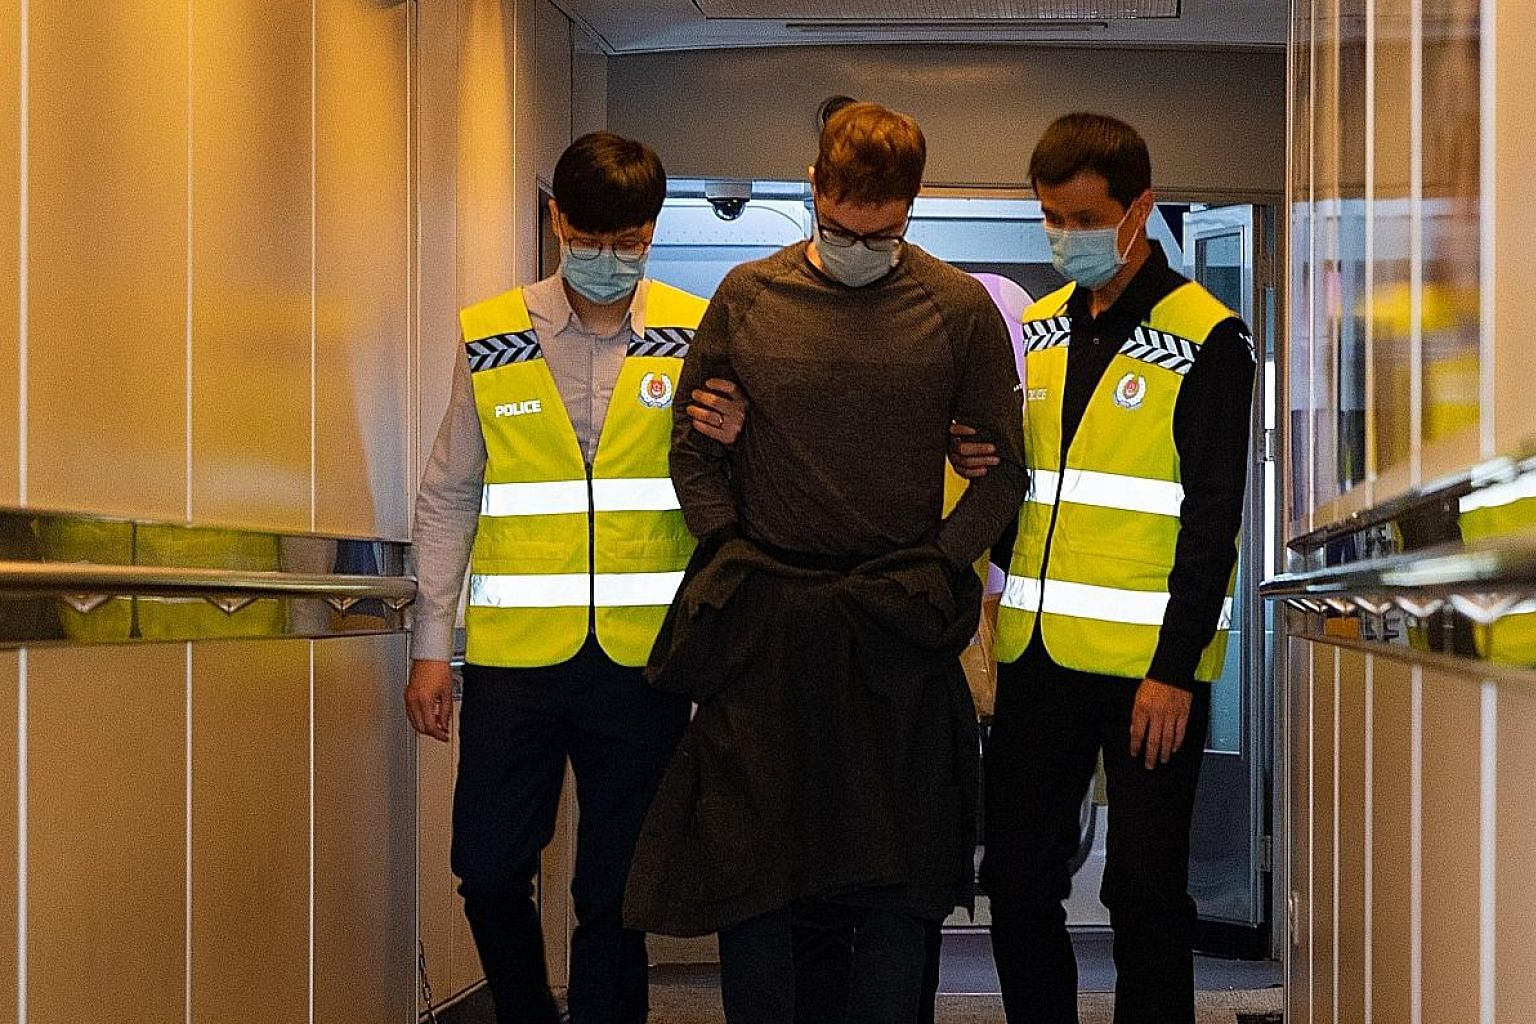 Canadian David James Roach, the suspect in a 2016 robbery of a Standard Chartered Bank branch in Holland Village, arriving in Singapore yesterday in the custody of the Singapore Police Force after he was extradited from Britain. He has been charged w